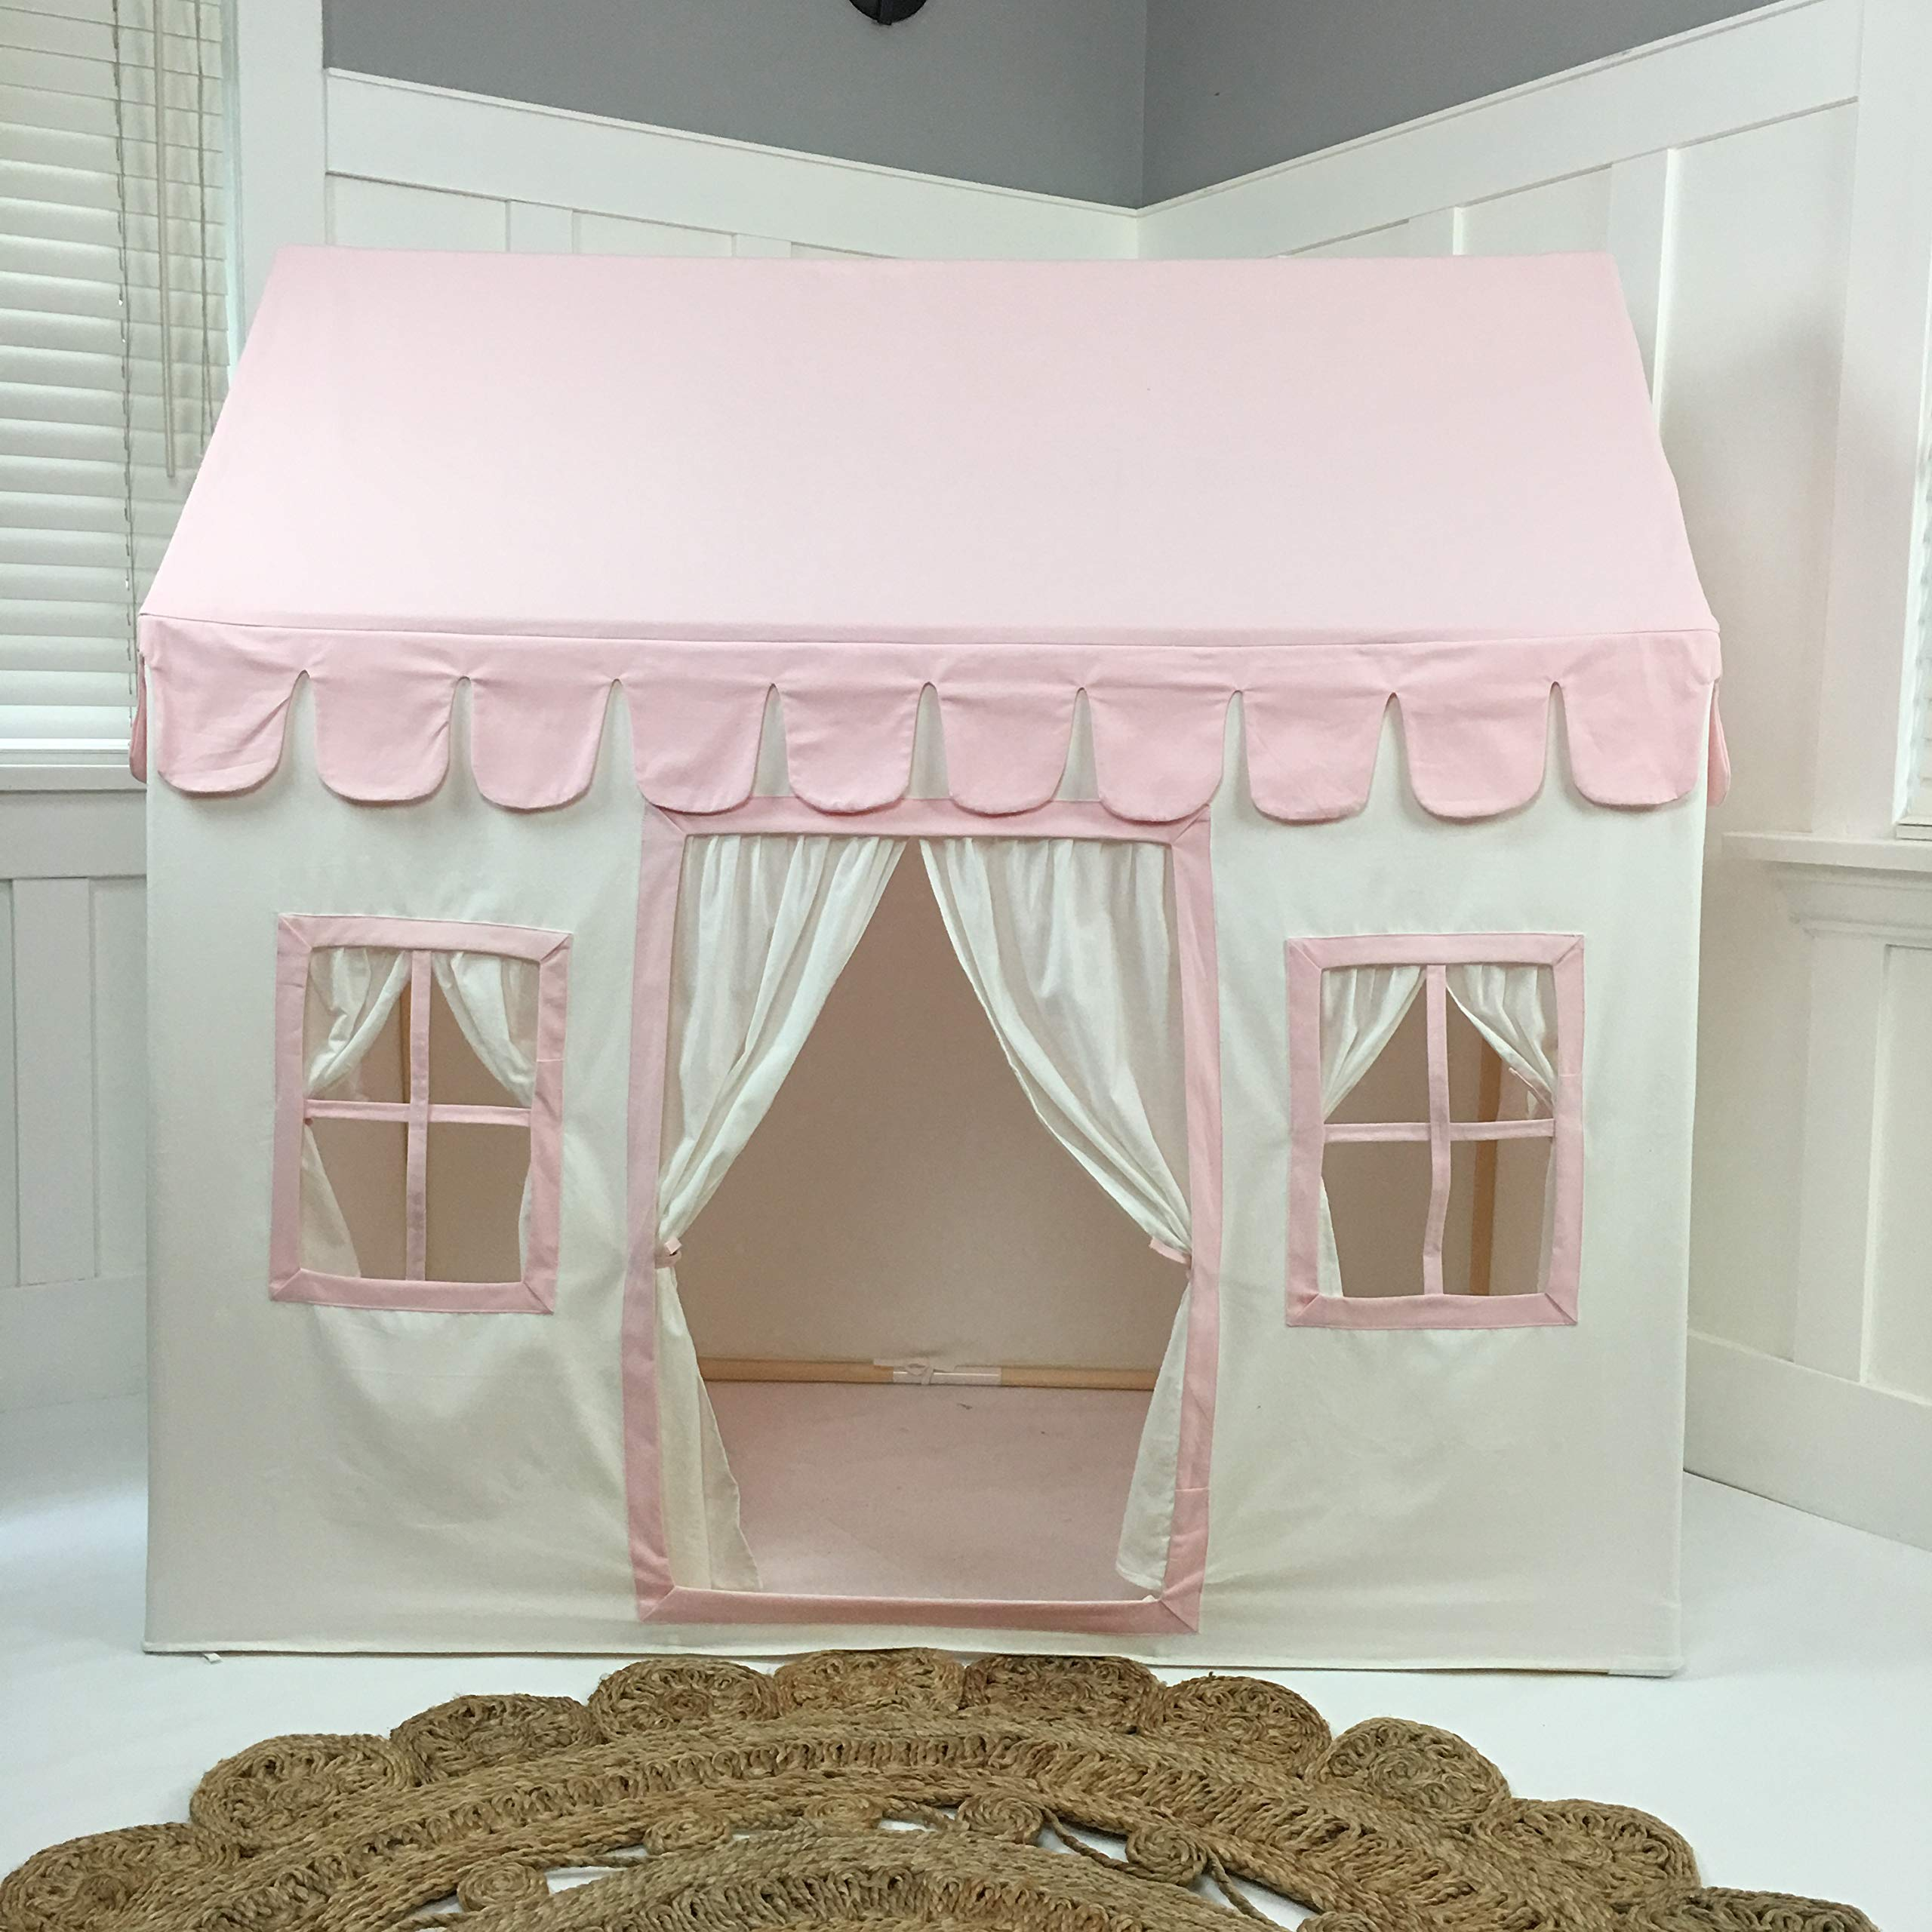 Domestic Objects Children's Playhouse. Handmade with 100% Cotton Premium Quality. Pink by Domestic Objects (Image #5)